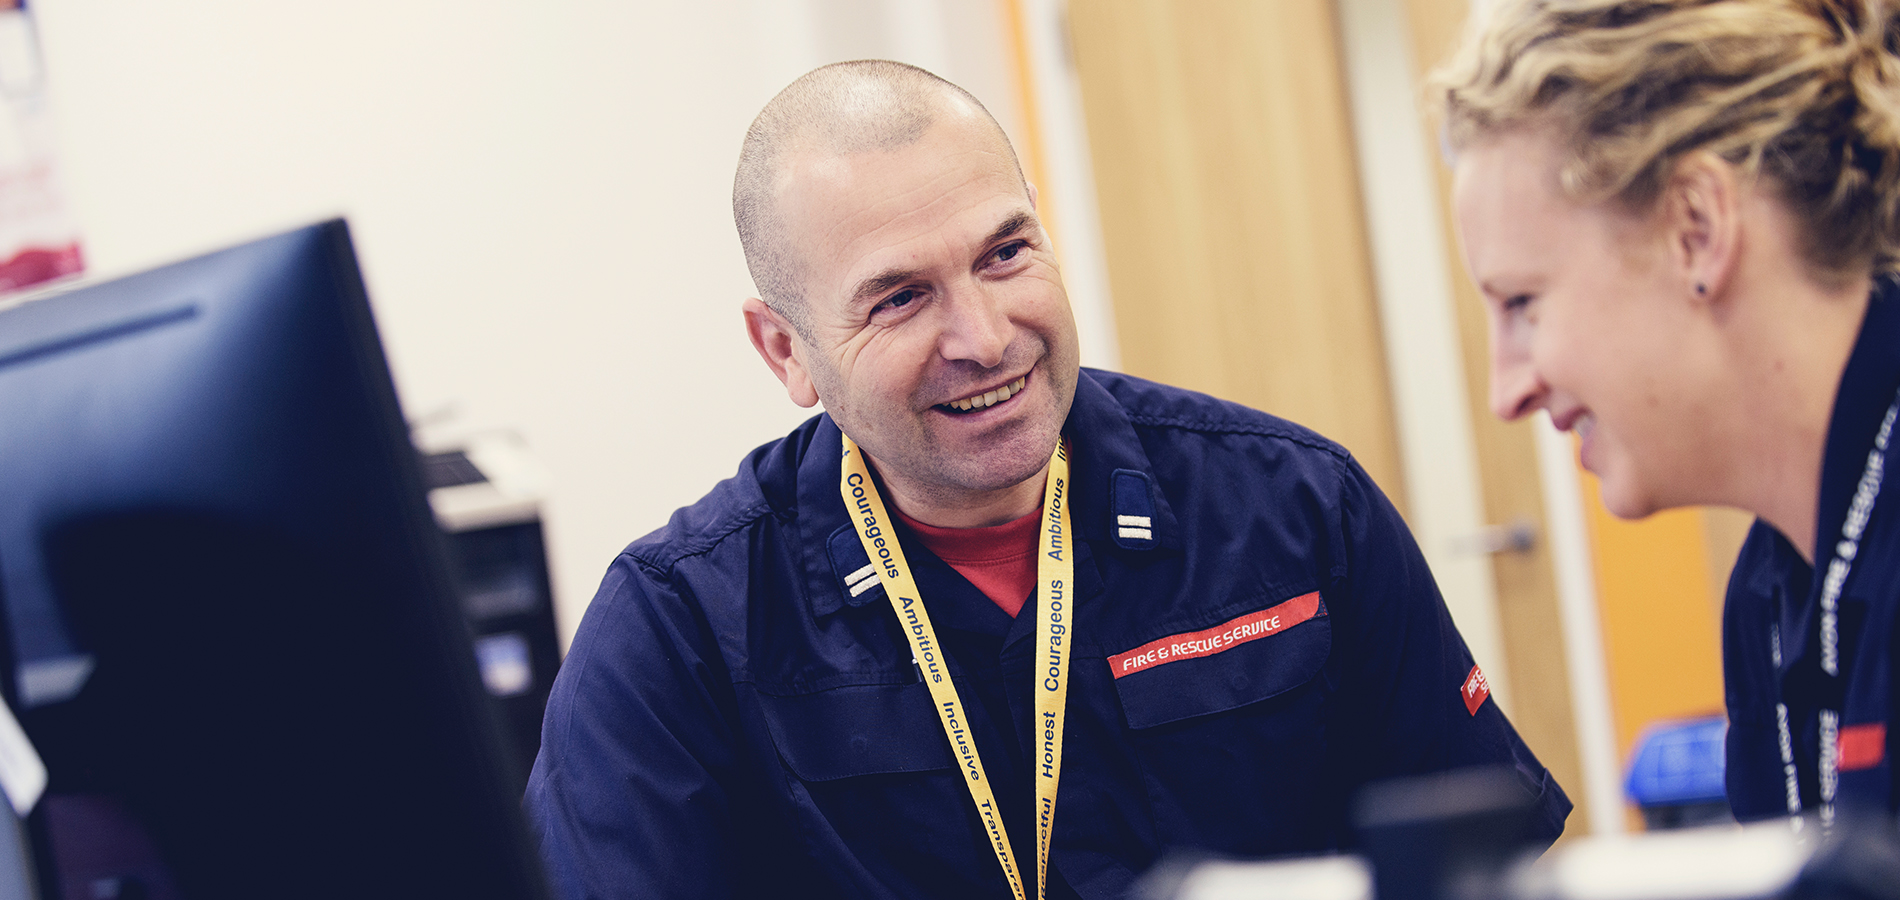 Fire and Rescue Apprenticeships EPAO